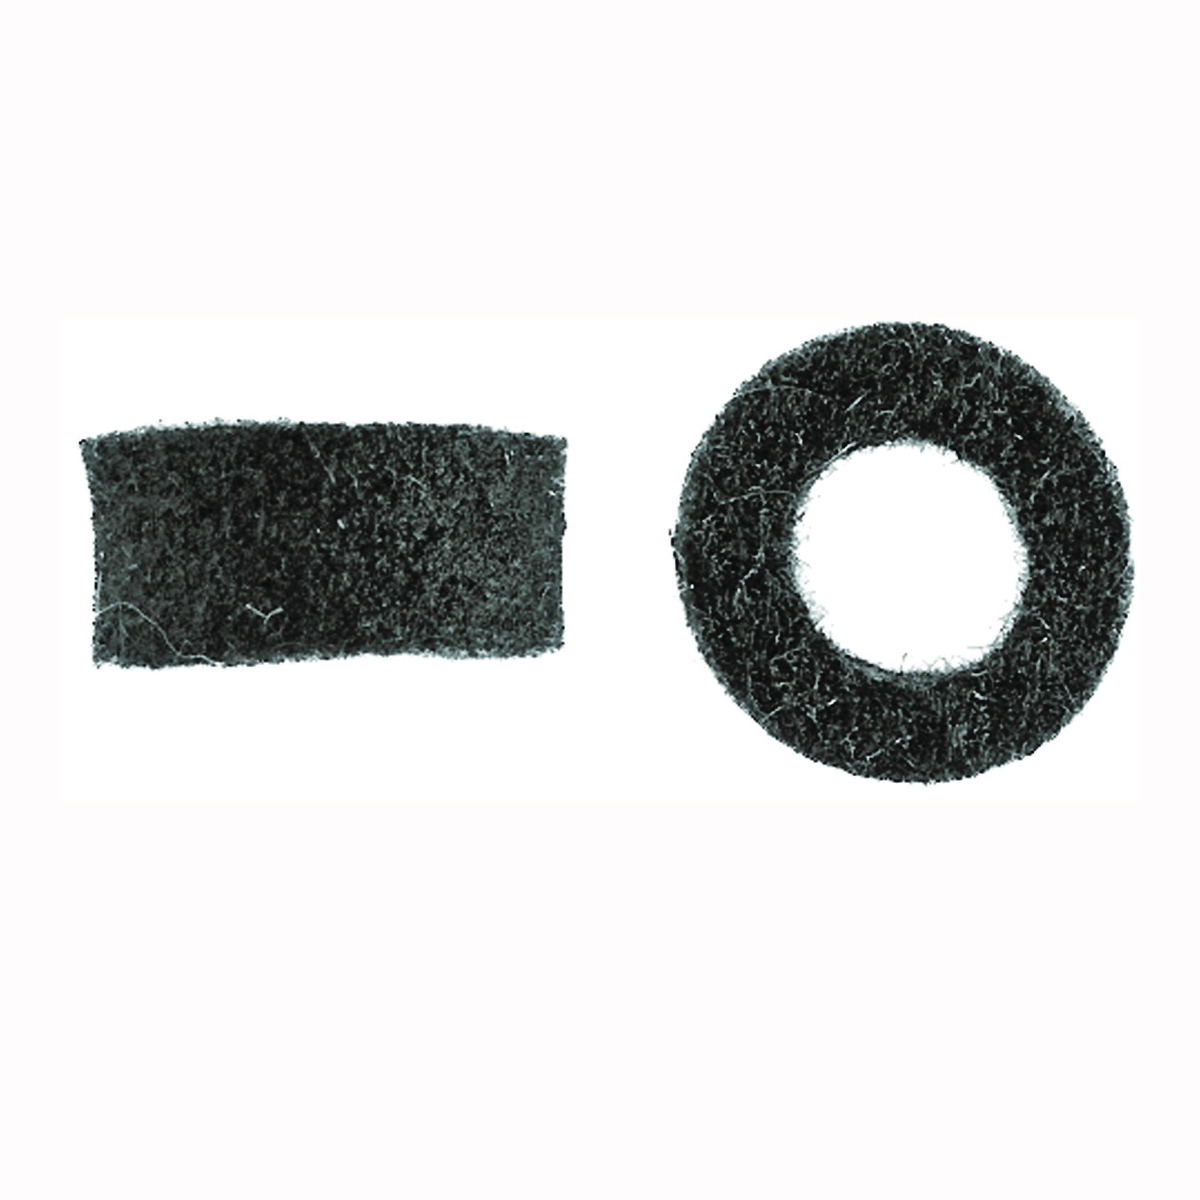 Picture of Danco 35231C Bonnet Packing, #95, 3/8 in ID x 11/16 in OD Dia, 5/16 in Thick, Felt Cloth